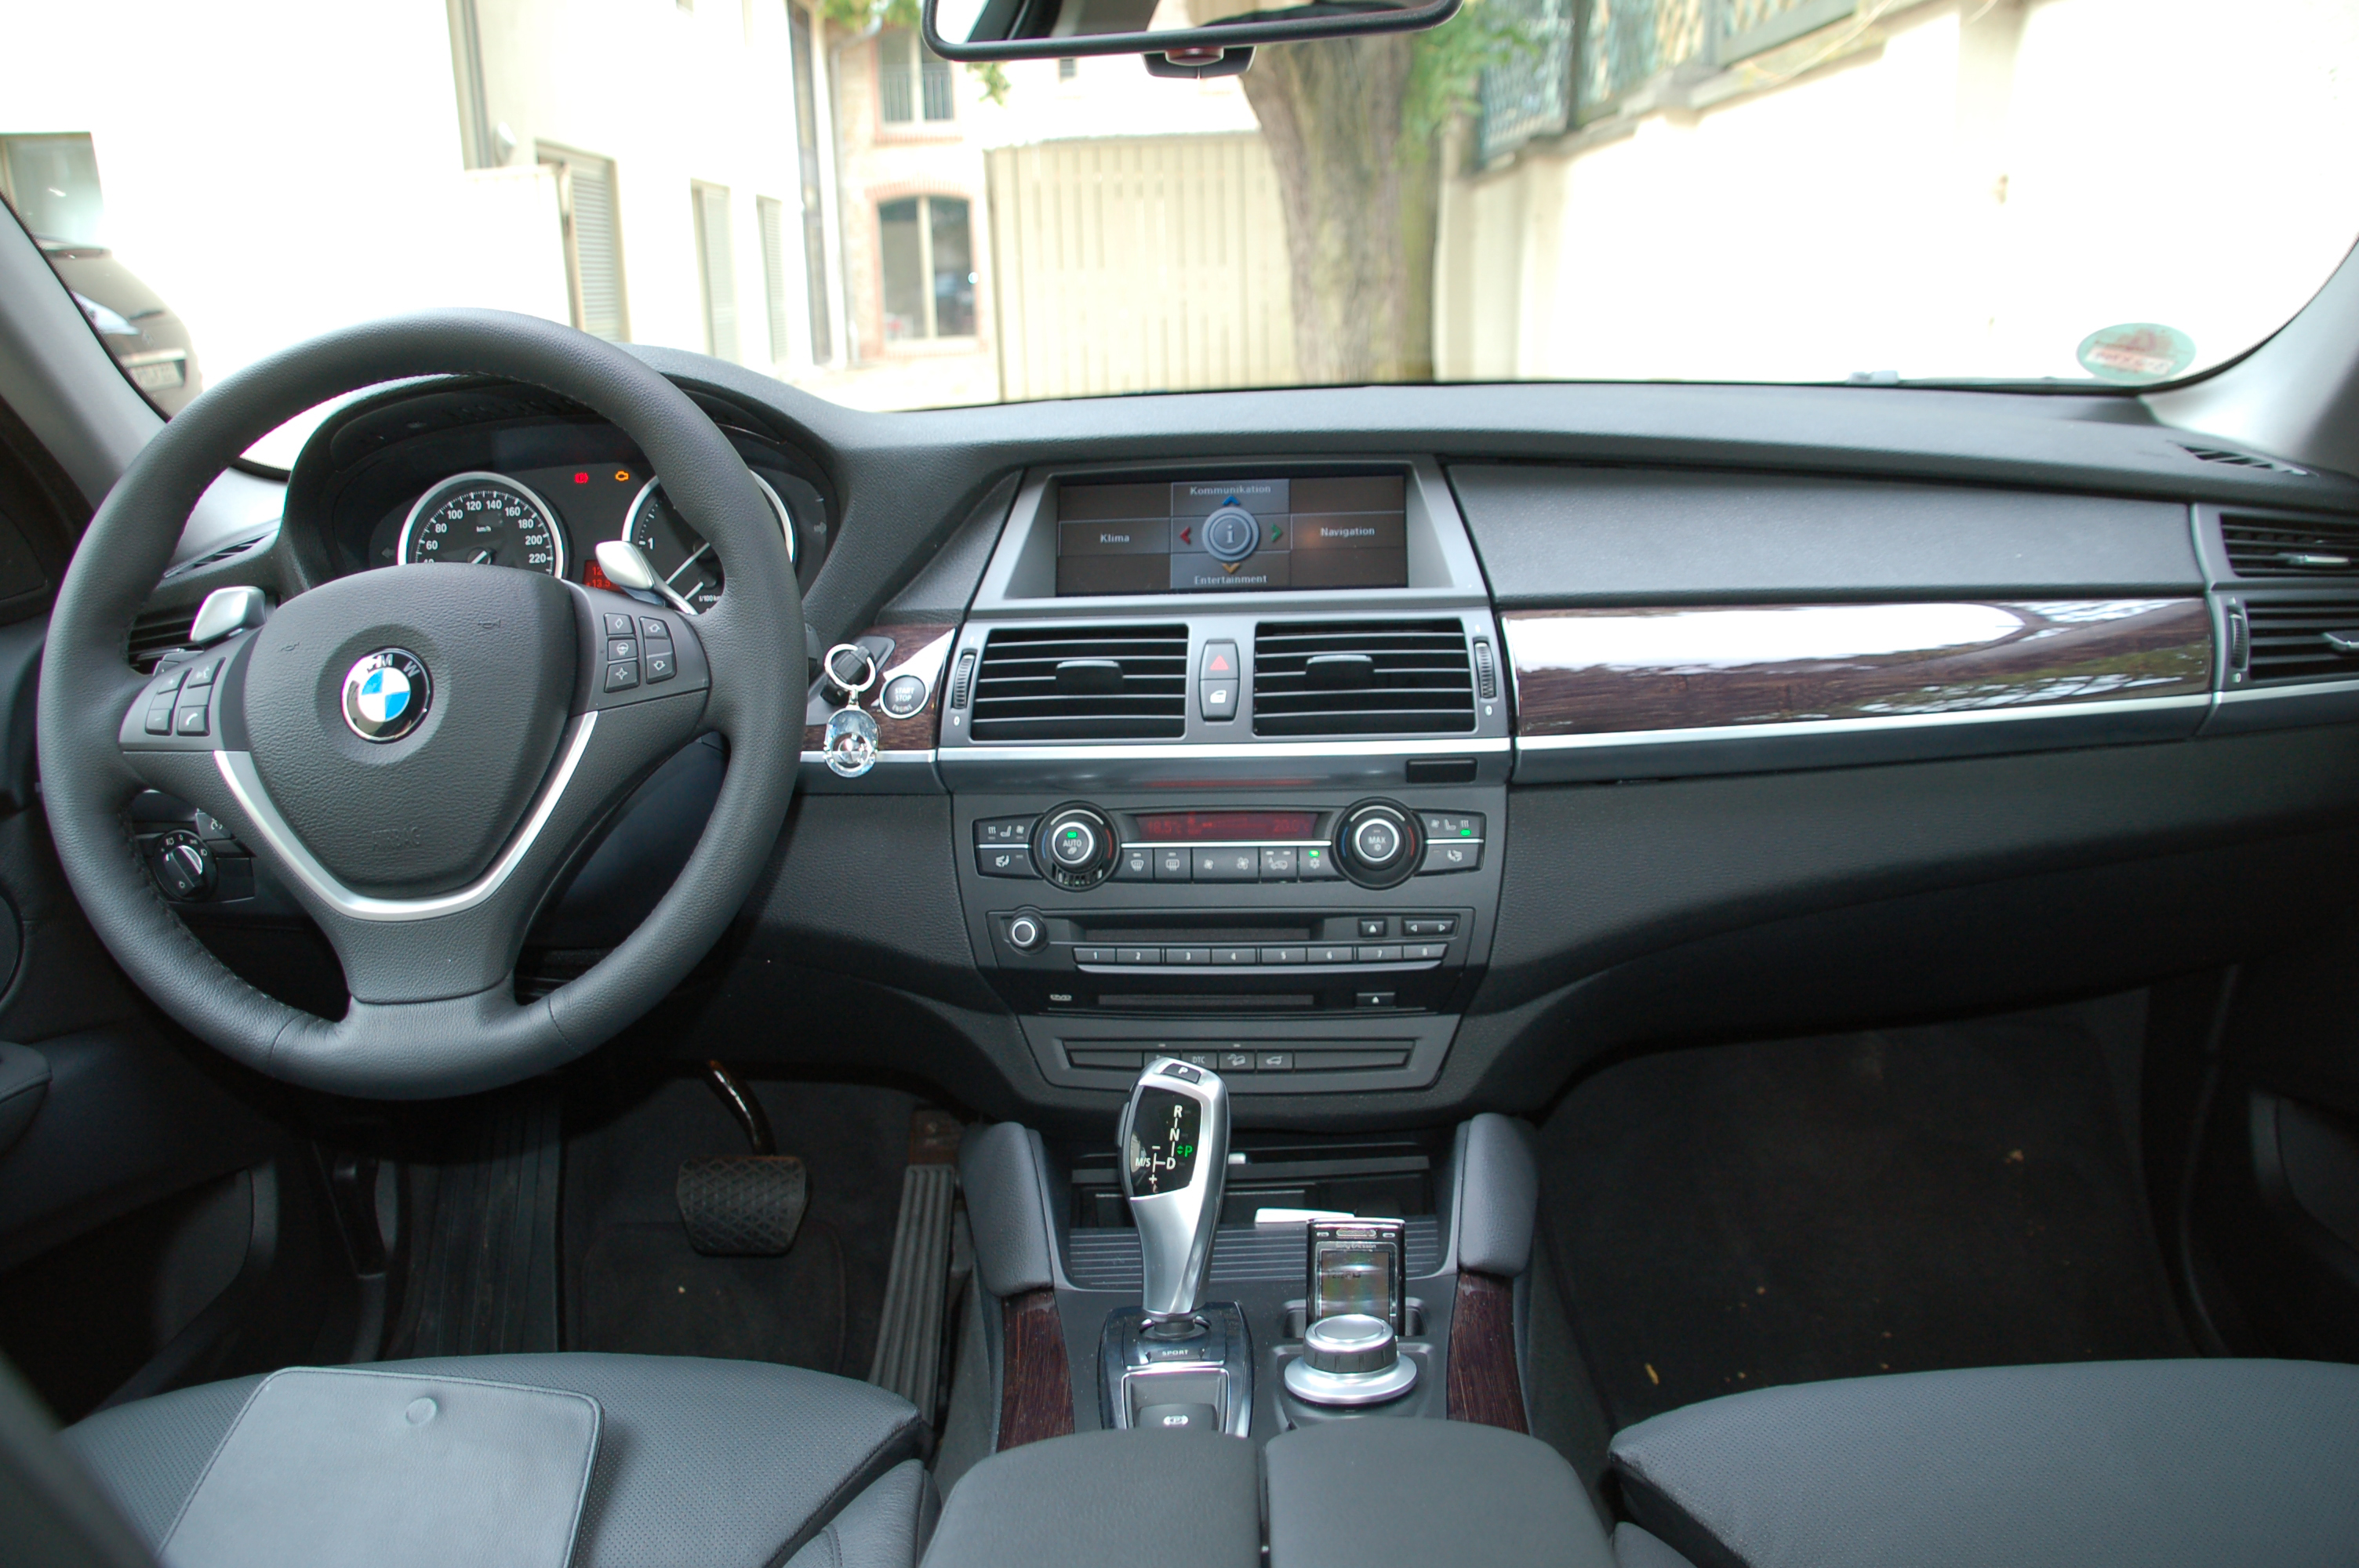 File:BMW X6 xDrive35d Cockpit.jpg - Wikimedia Commons